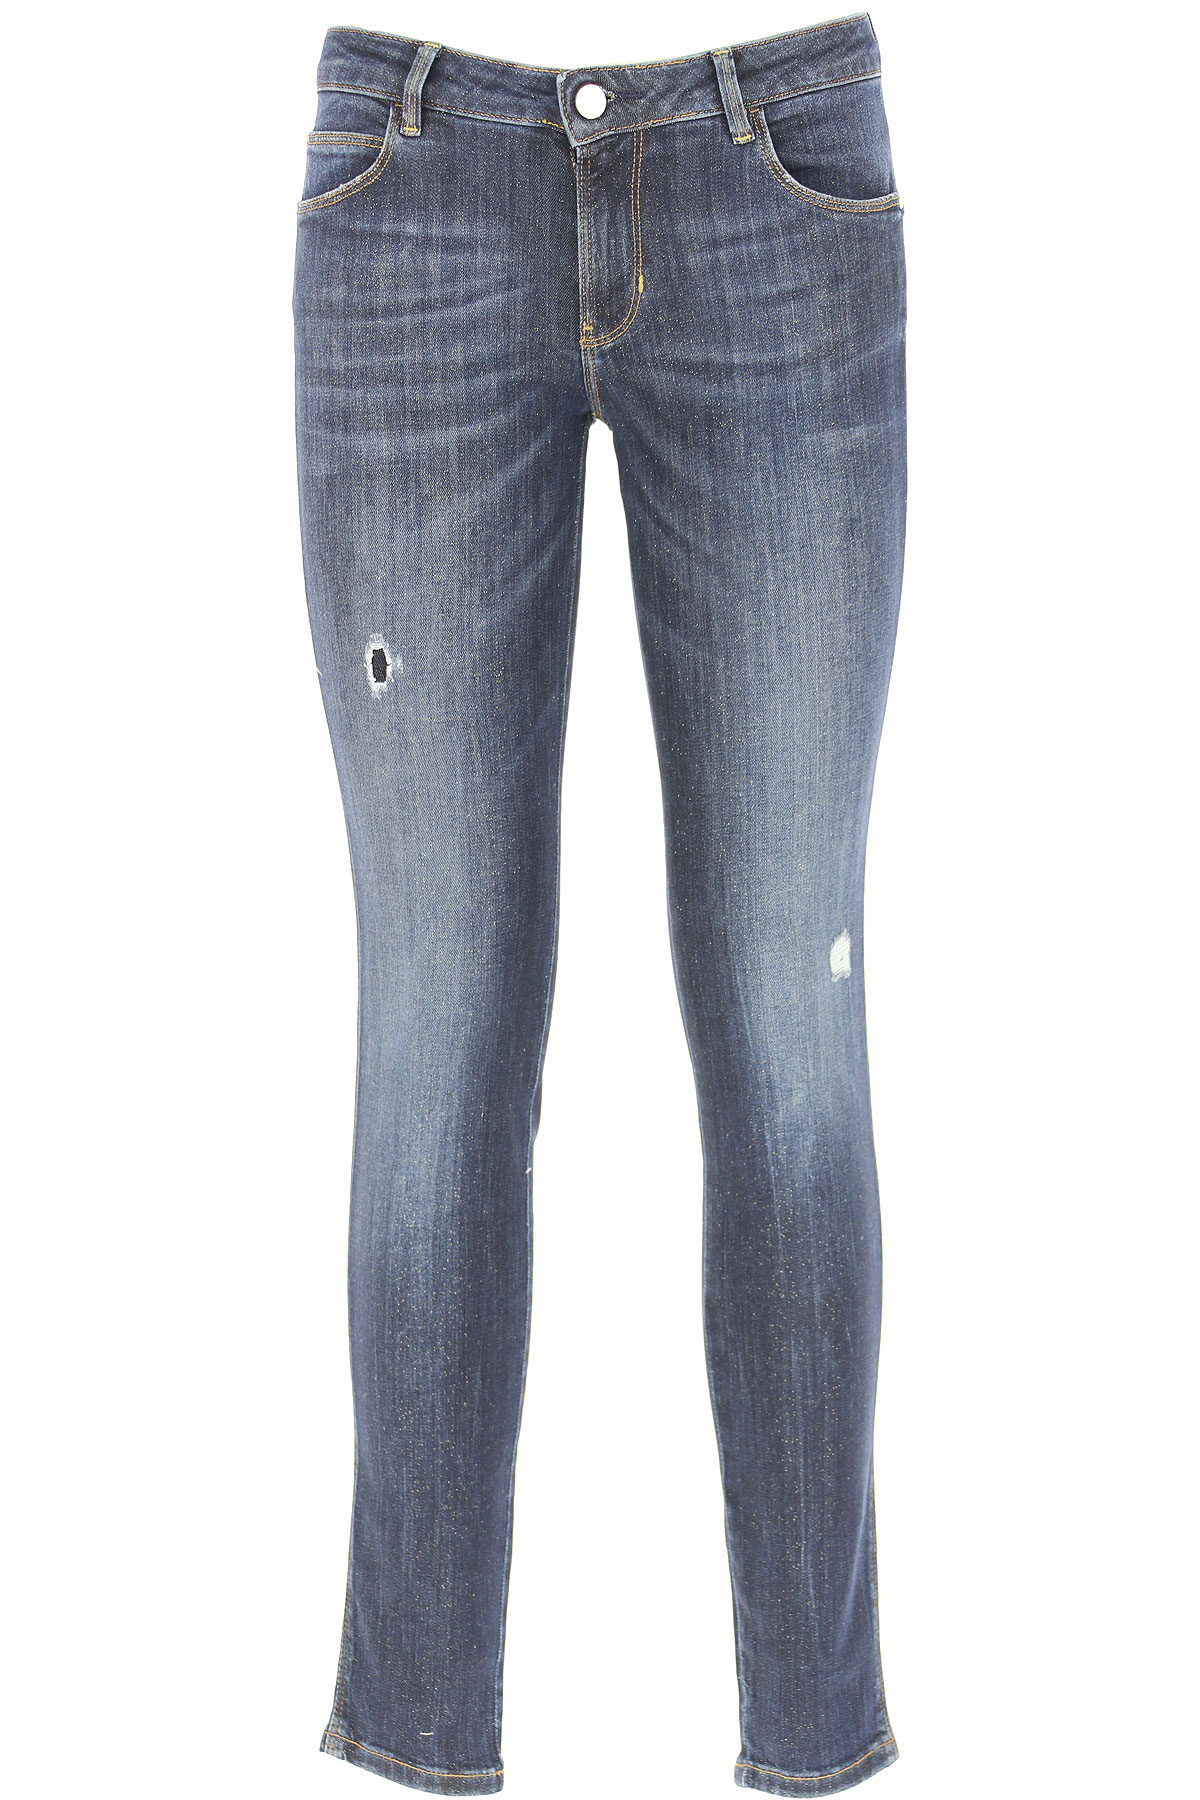 Guess Jeans On Sale, Dark Blue, Cotton, 2017, 24 25 26 27 28 29 30 31 32 33